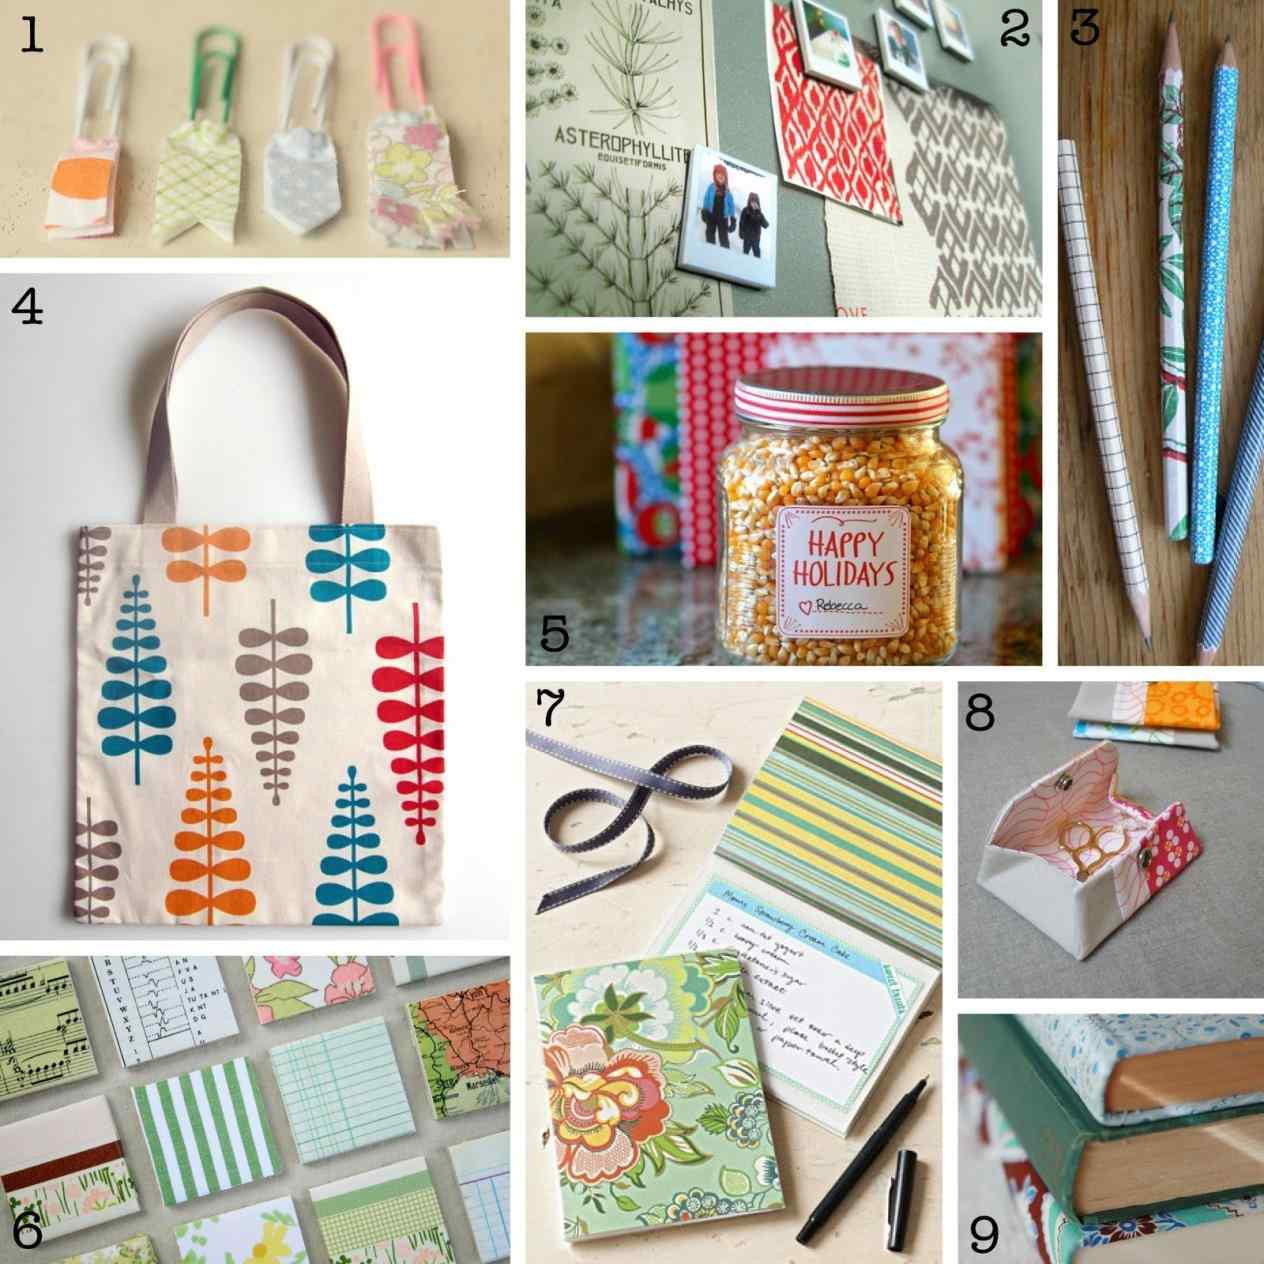 Best ideas about DIY Boyfriend Christmas Gifts . Save or Pin Craft Gift Ideas For Boyfriend Now.